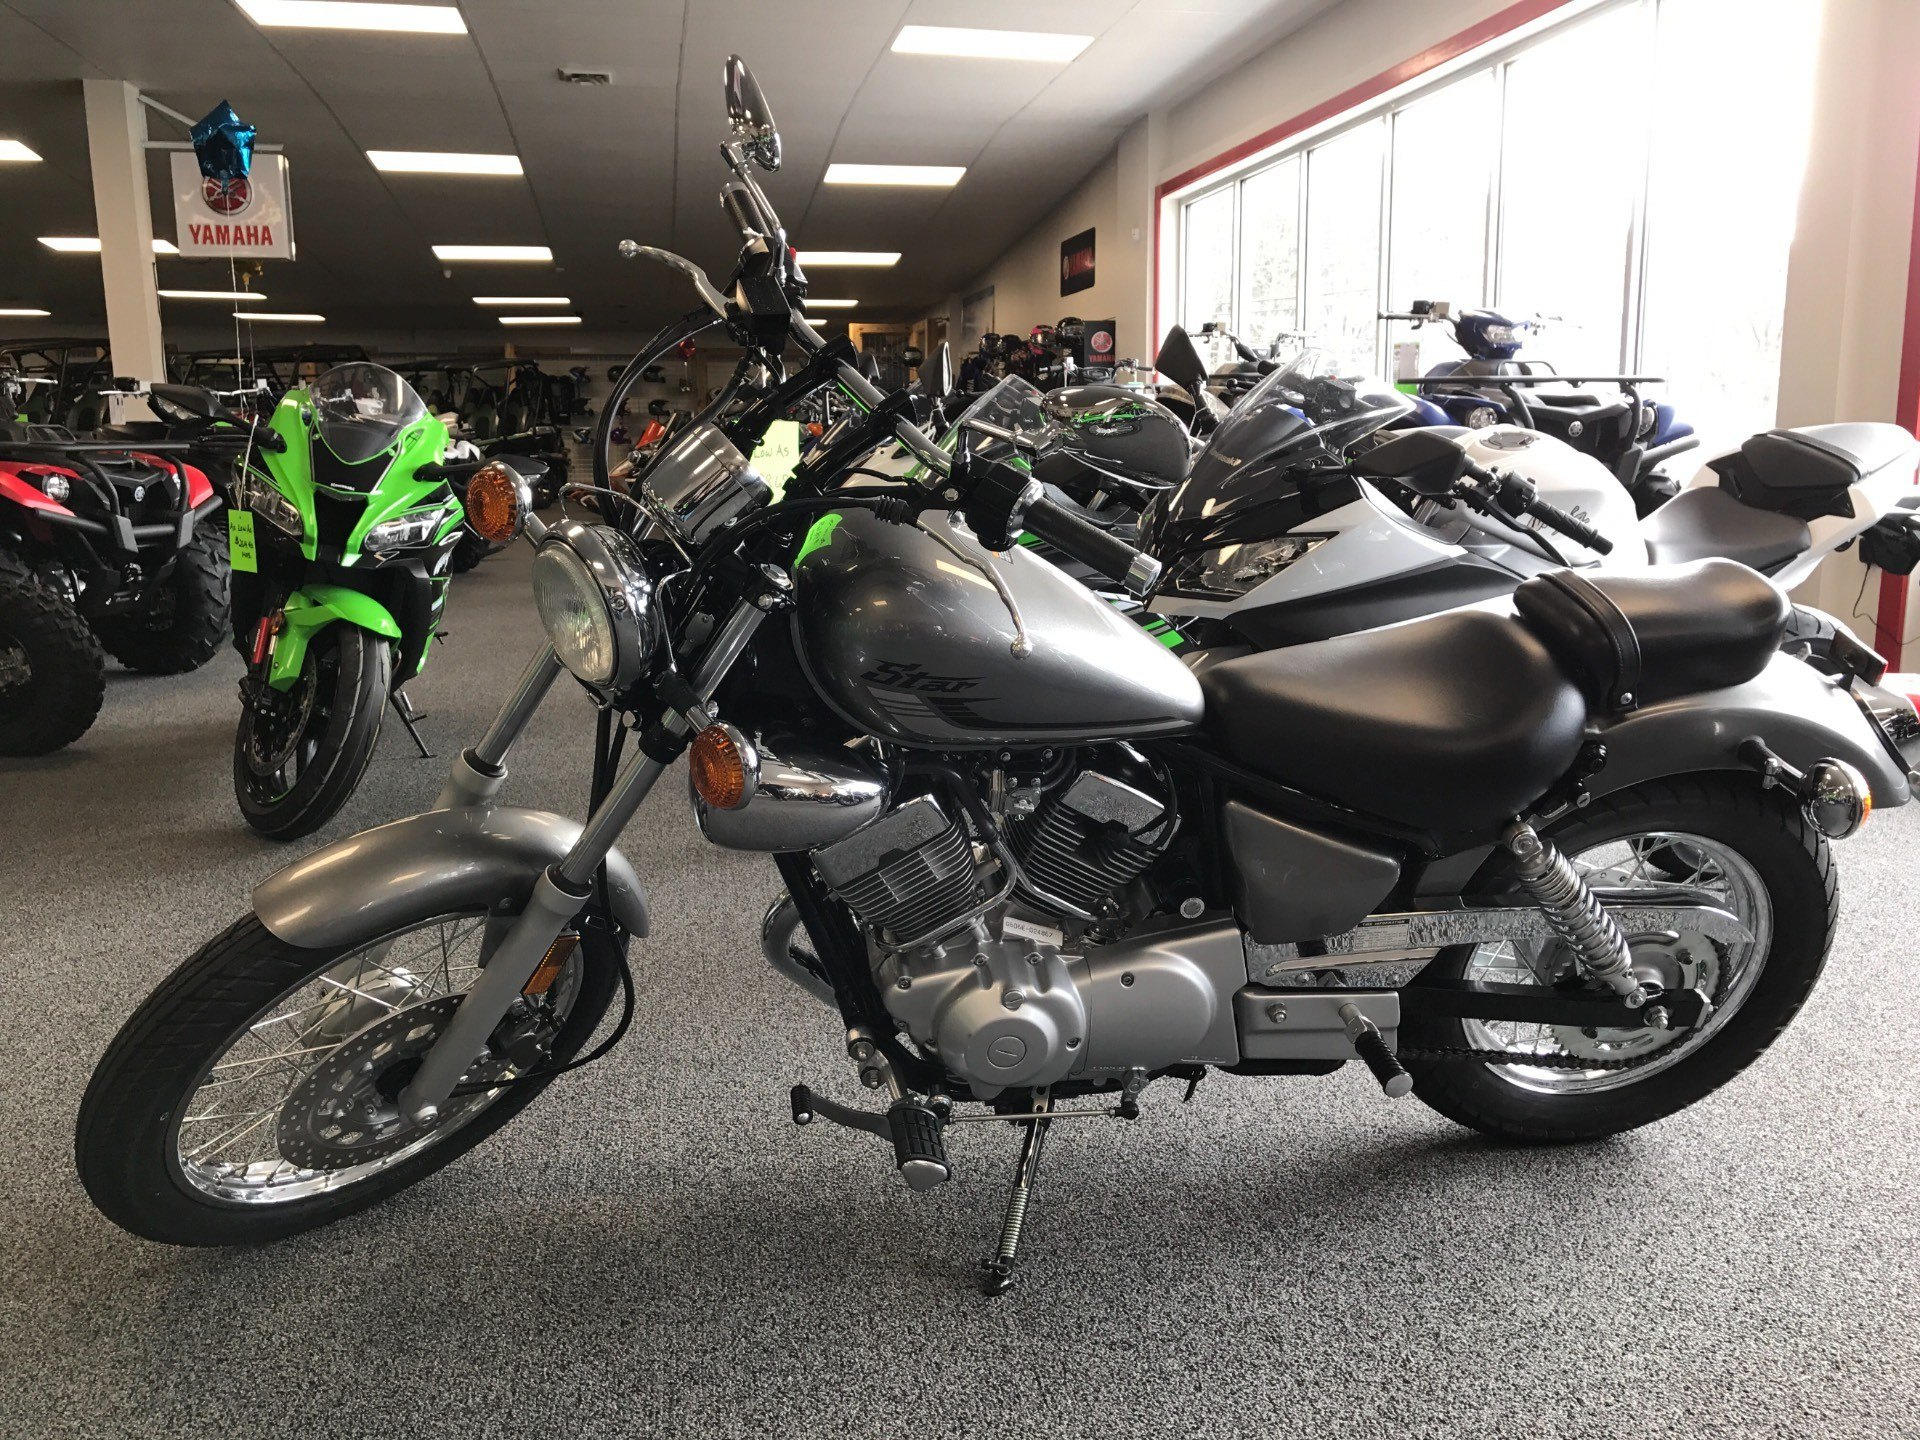 2017 Yamaha V Star 250 for sale 13009